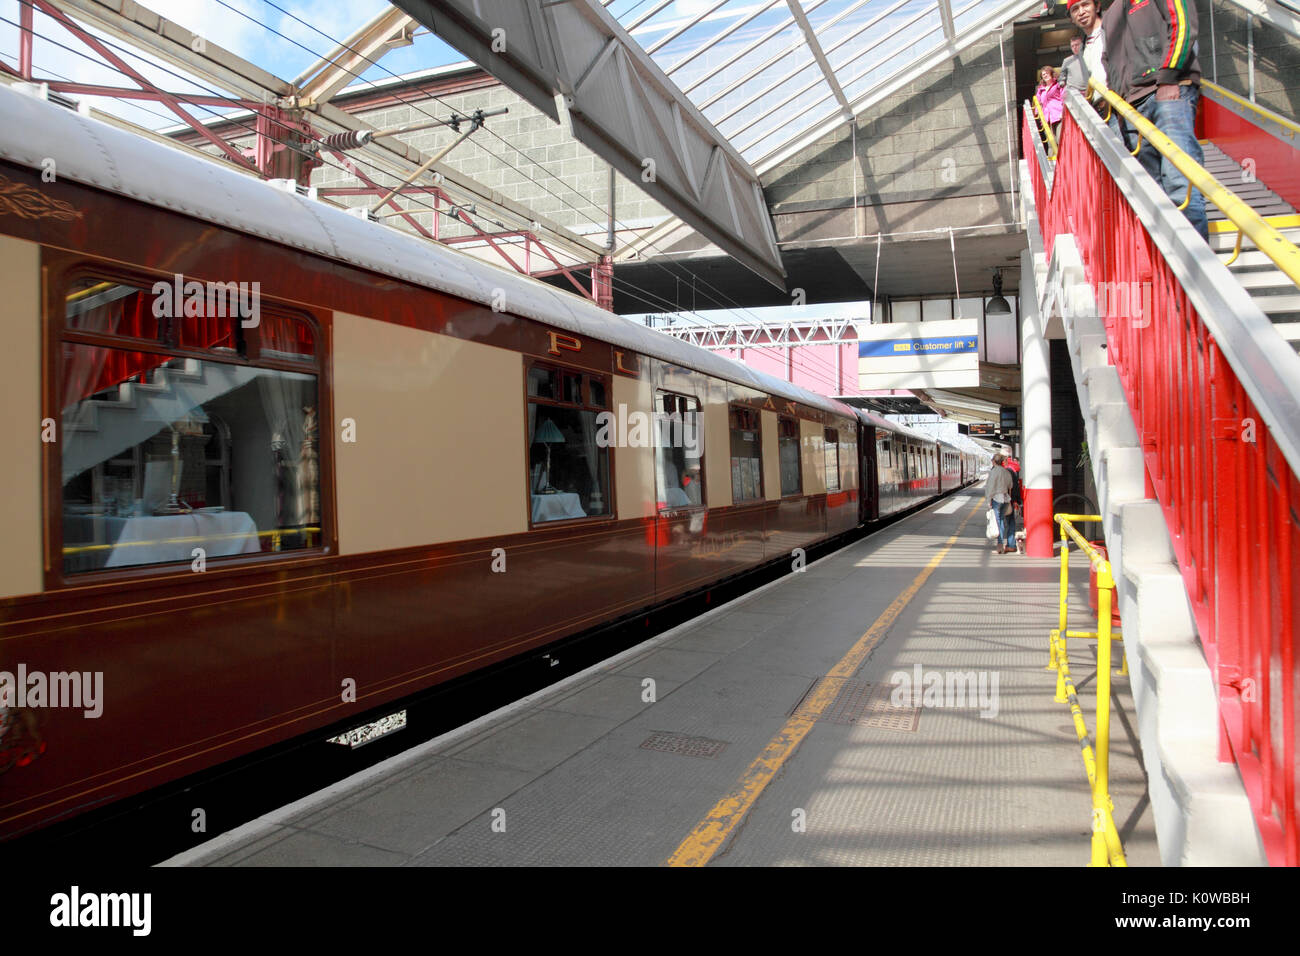 A Pullman carriage at Platform 5, Crewe Station, currently (2017) one of the platforms used for the Virgin West Coast trains - Stock Image